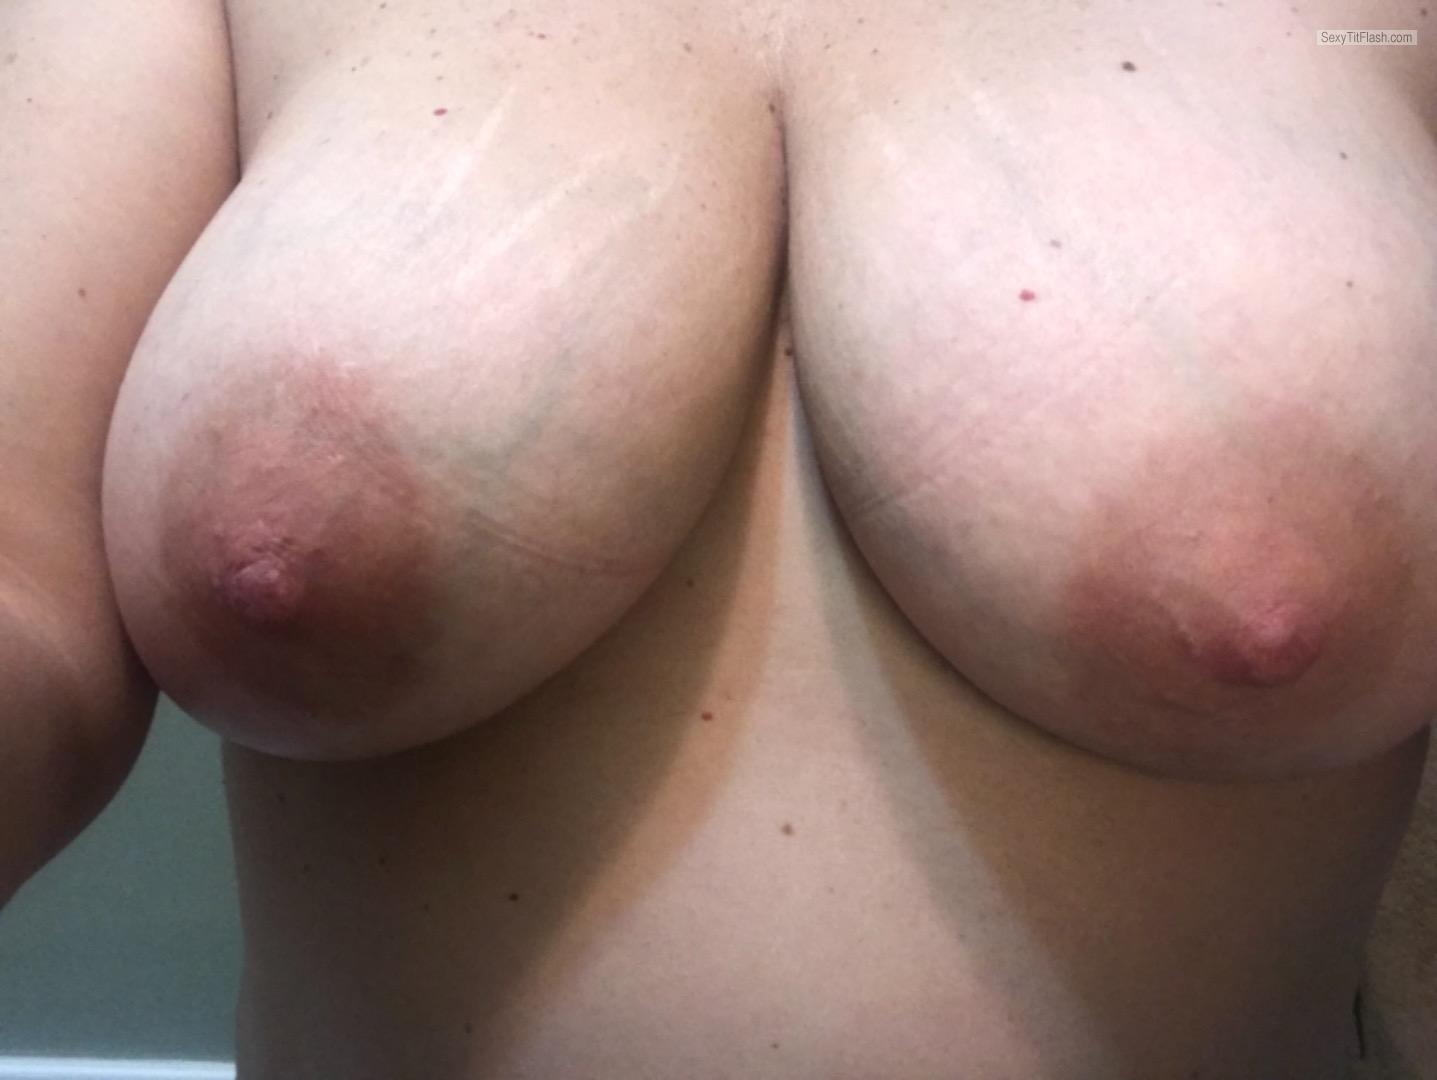 My Big Tits Selfie by Jays Girl